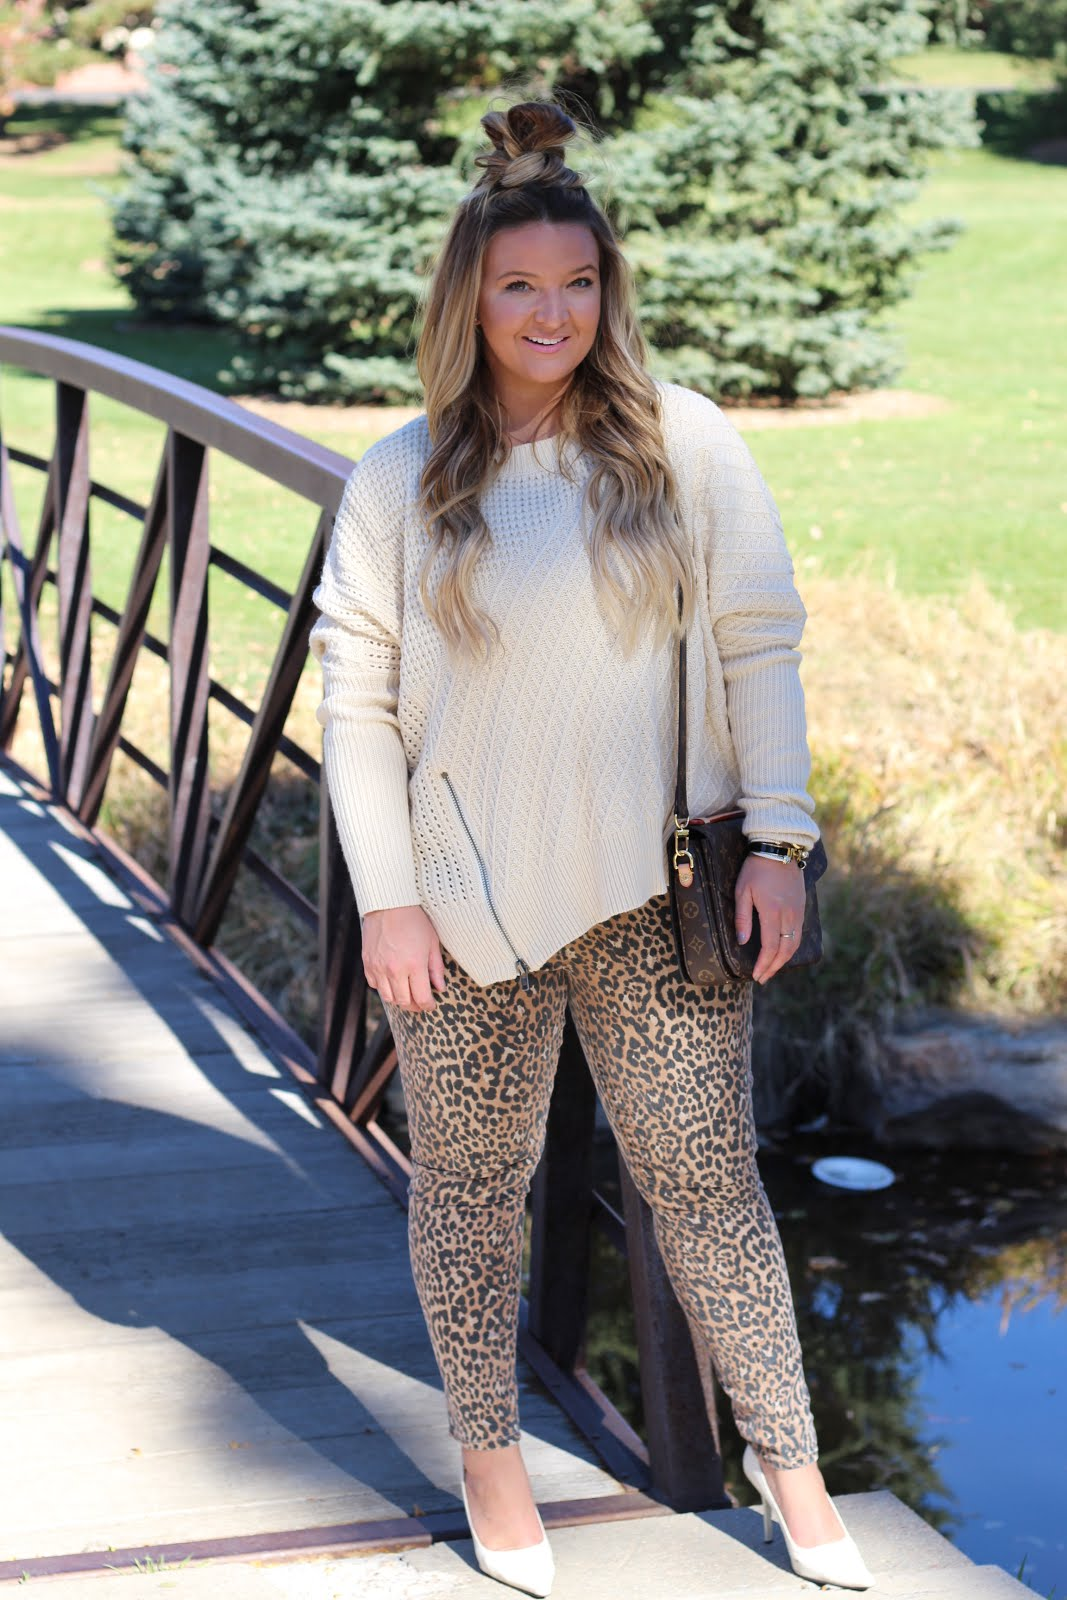 Leopard Print Pants are better than the usual blue jeans by fashion blogger Delayna Denaye